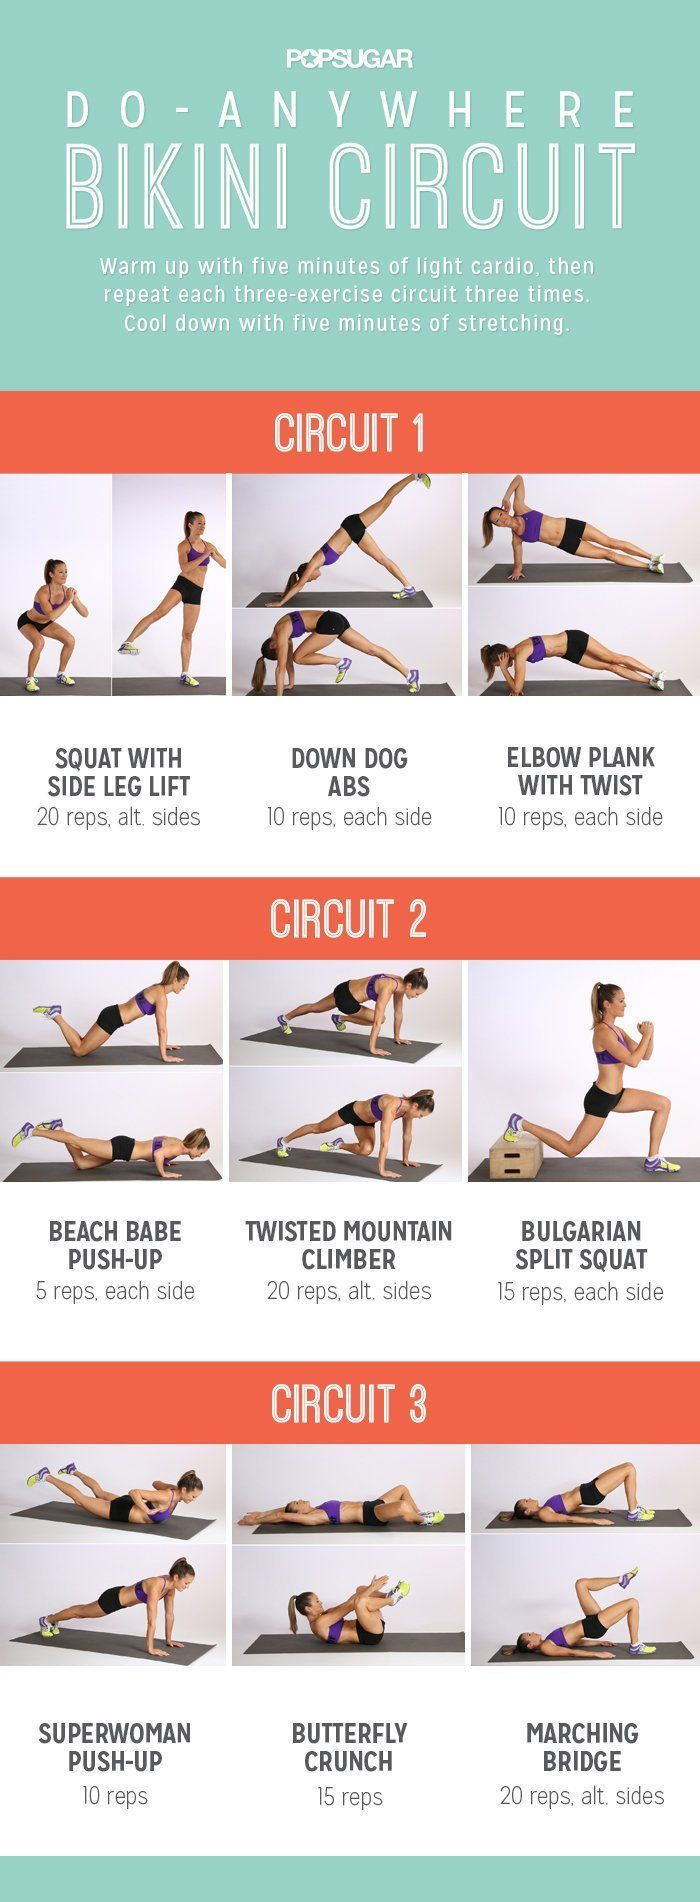 Printable No-Equipment At-Home Workouts #fitnessjourney #instafitness #fitnessgirl #fitnesslifestyle...